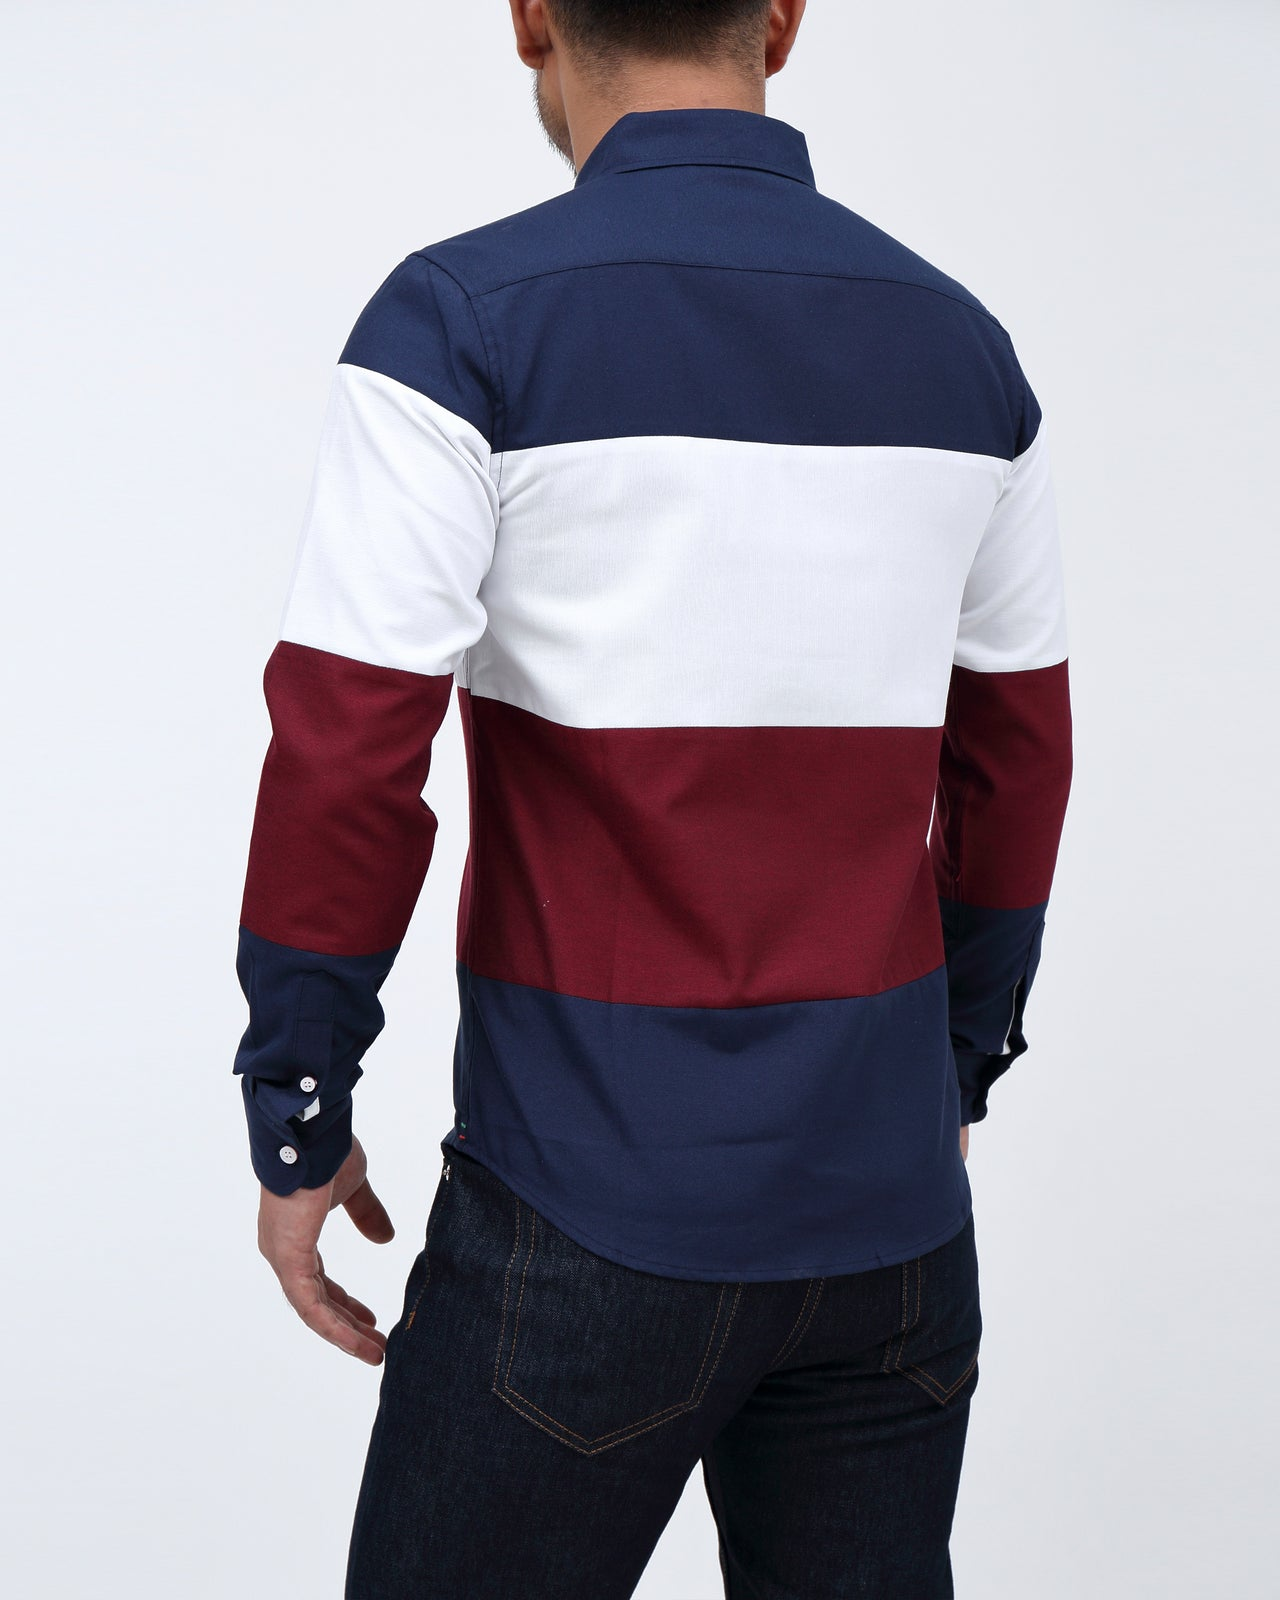 Blocked Shirt - Color: Navy/White/Burgundy | Multi